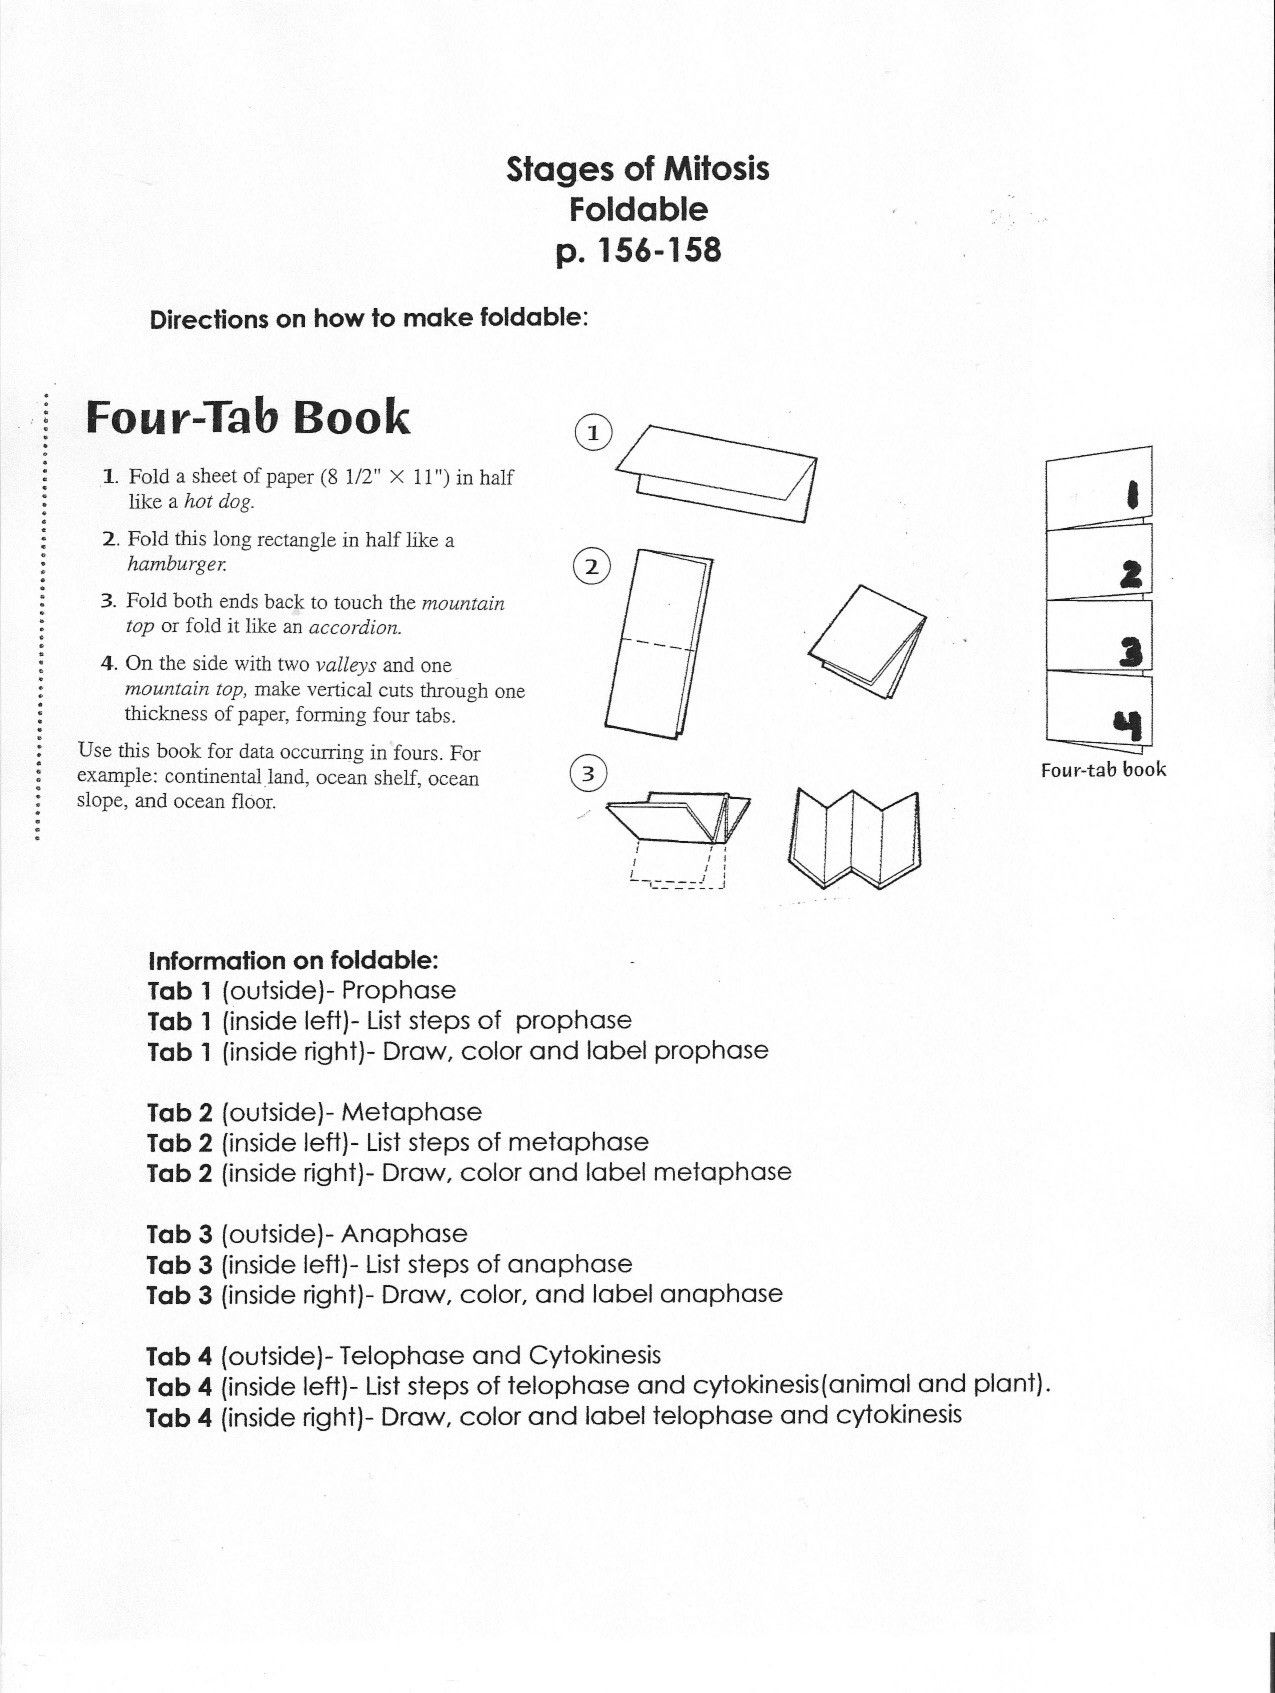 4 Free Math Worksheets Third Grade 3 Subtraction Subtract 1 Digit From 2 Digit Missing Number Free Math Worksheets Free Math Math Worksheets [ 1693 x 1275 Pixel ]